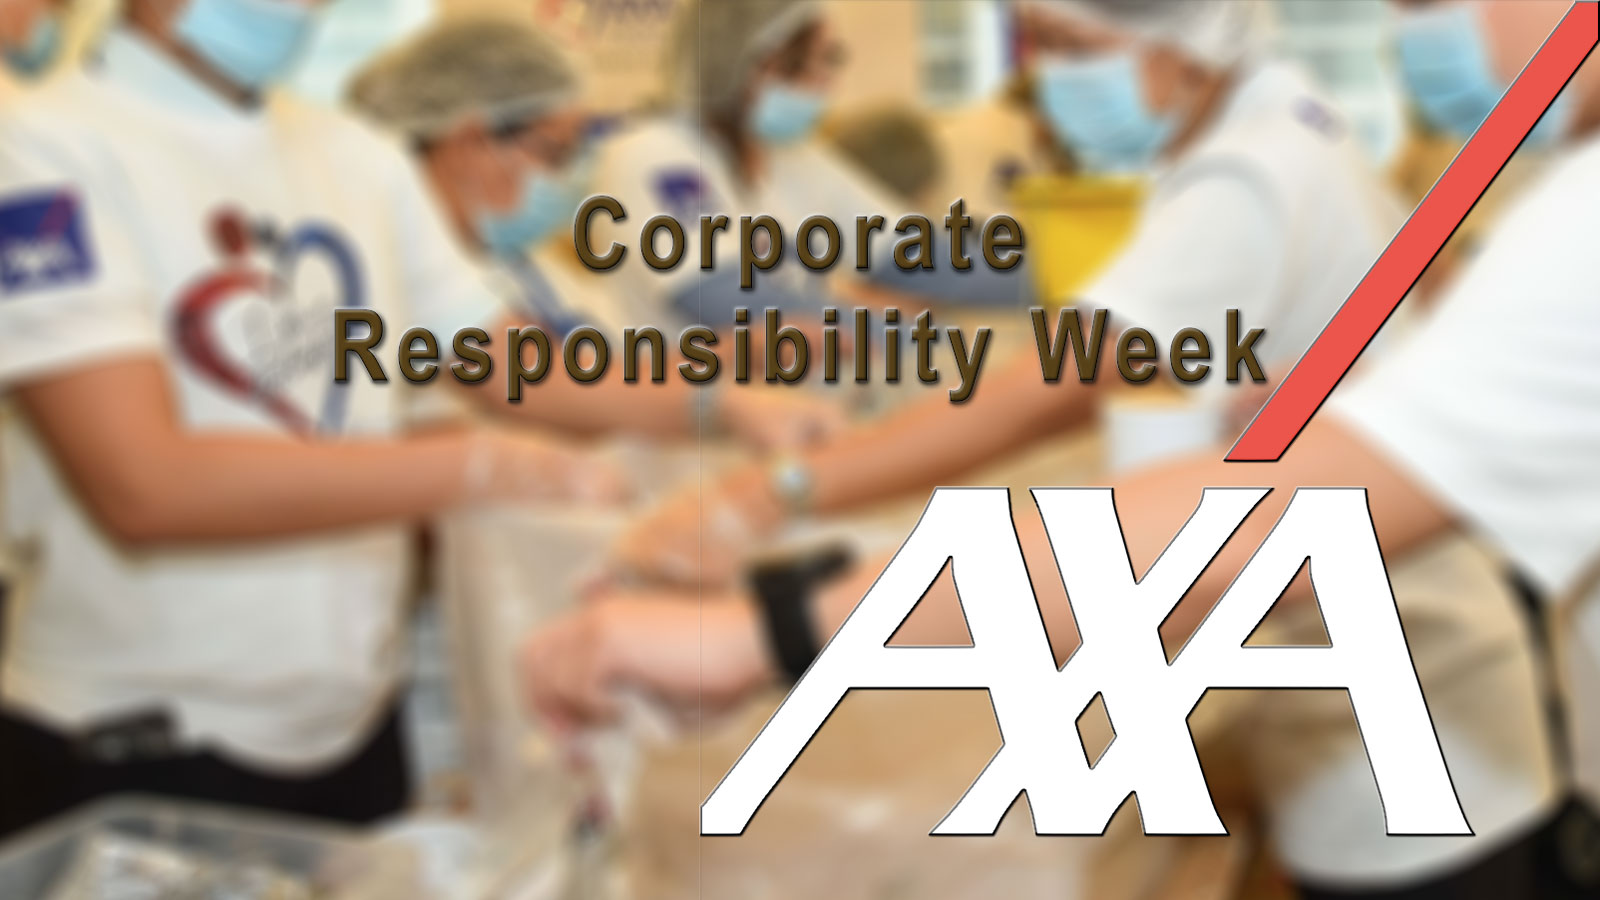 AXA's annual corporate responsibility week